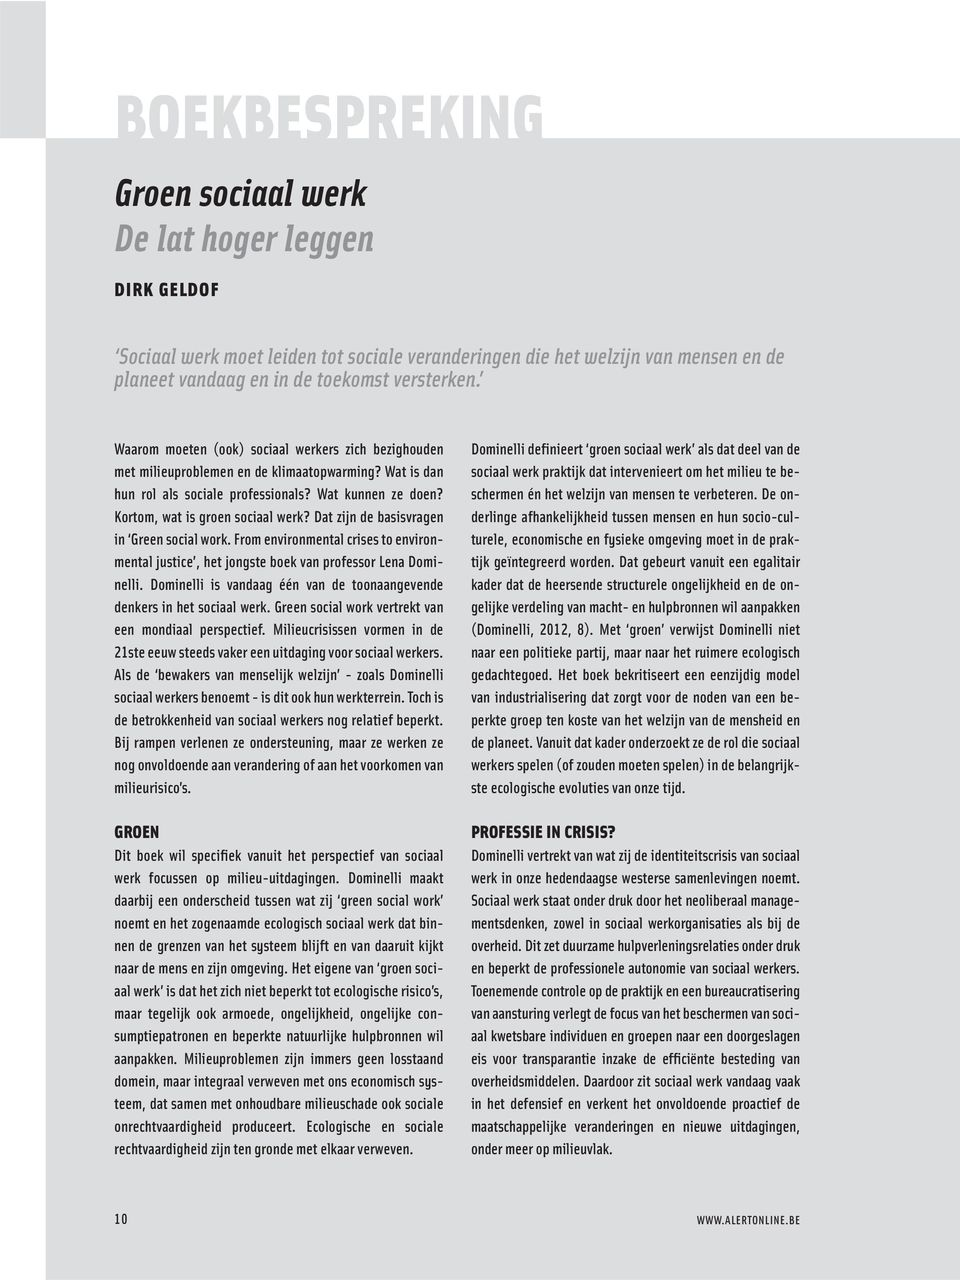 Dat zijn de basisvragen in Green social work. From environmental crises to environmental justice, het jongste boek van professor Lena Dominelli.